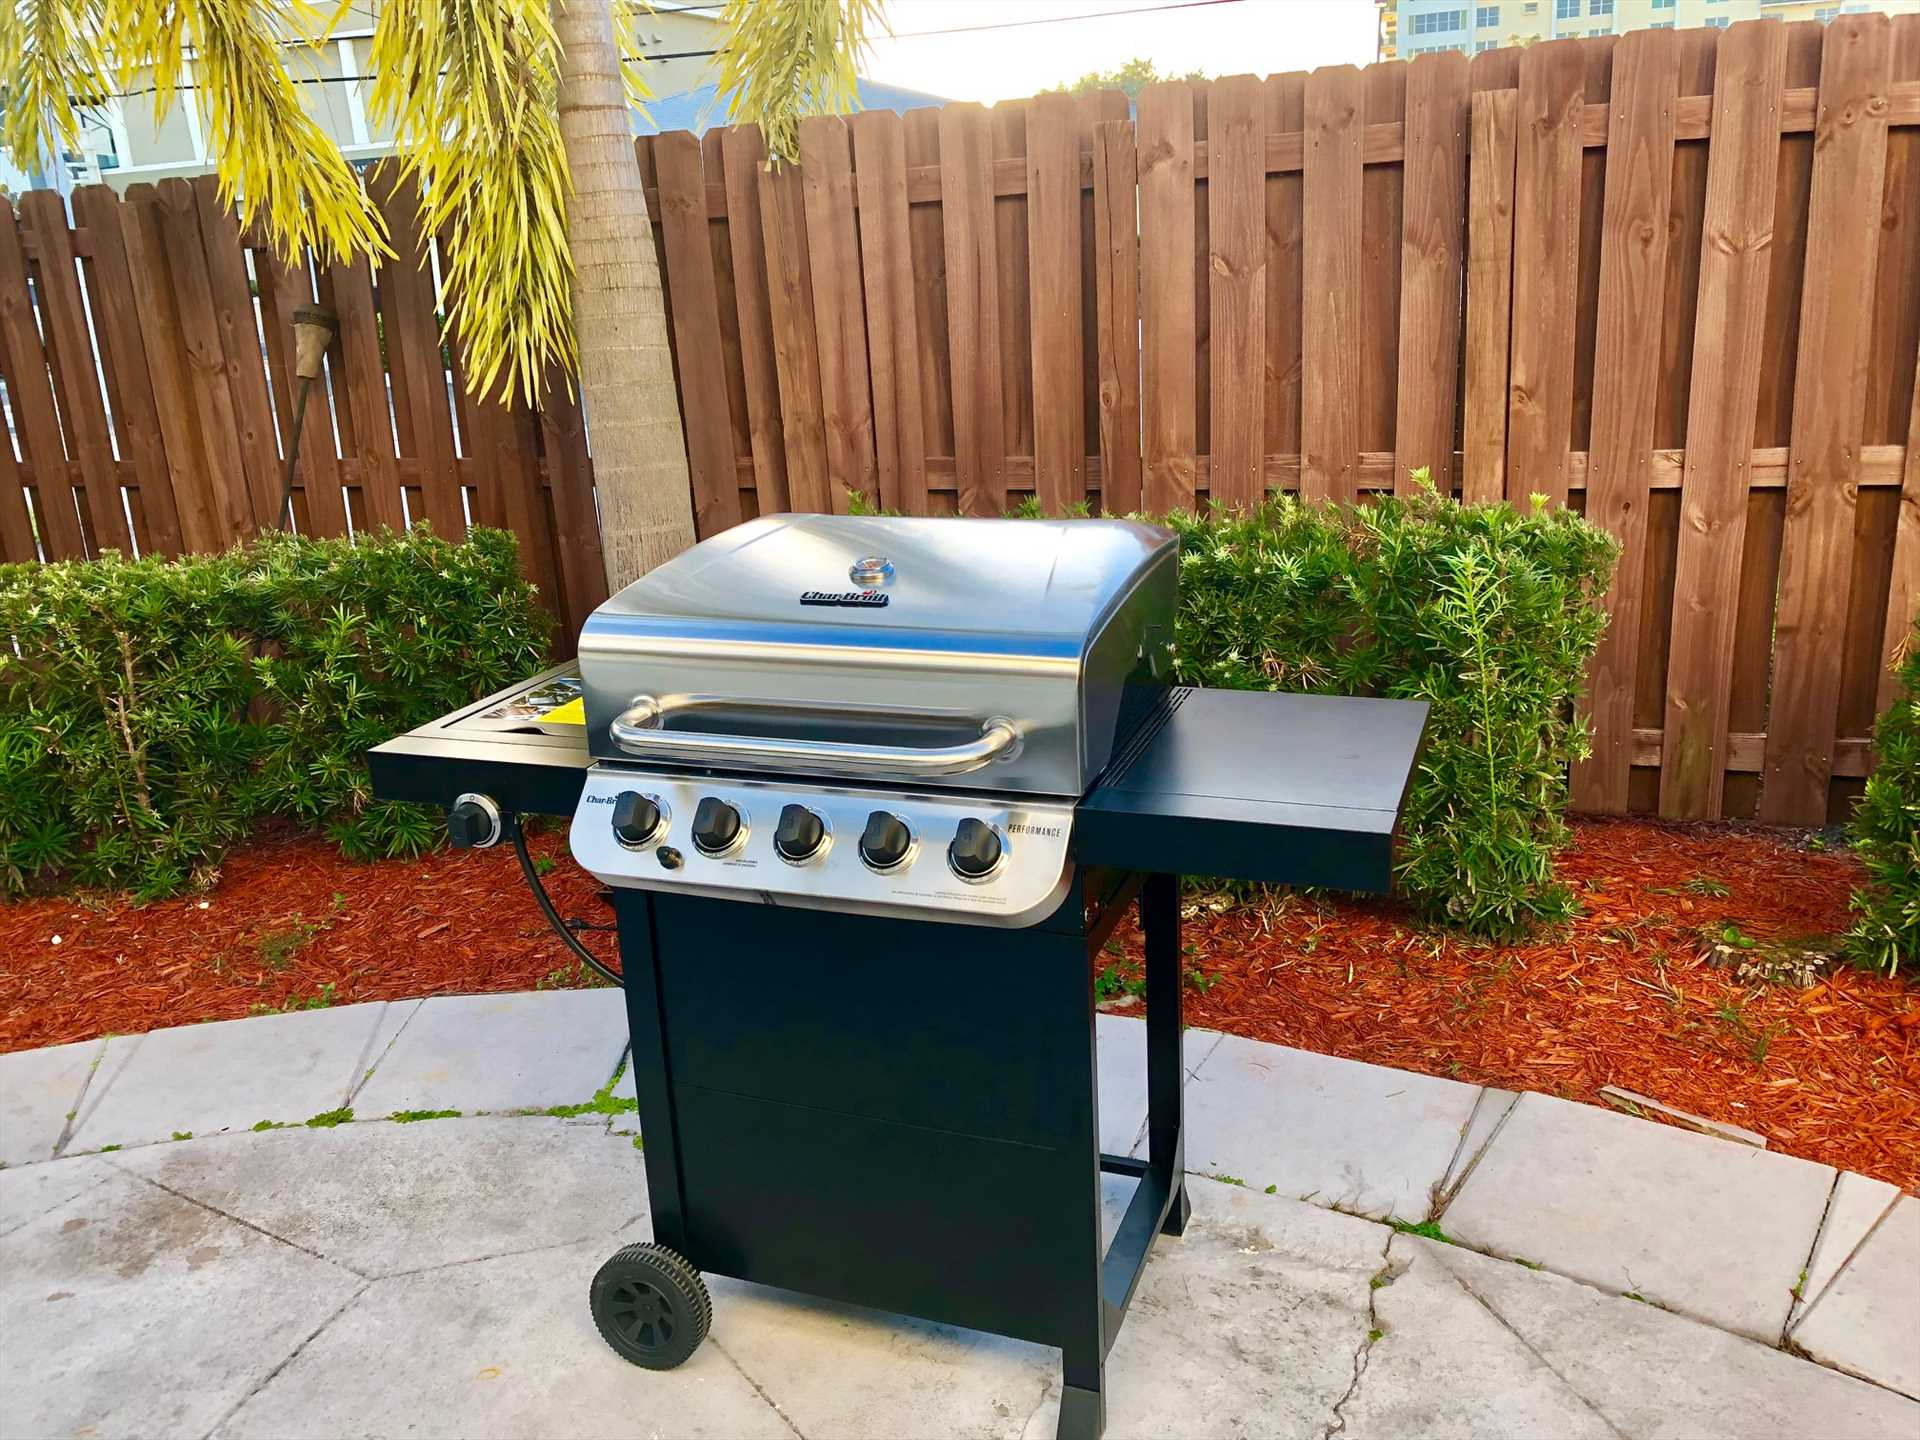 Or throw some shrimp skewers or a few steaks on the new gas